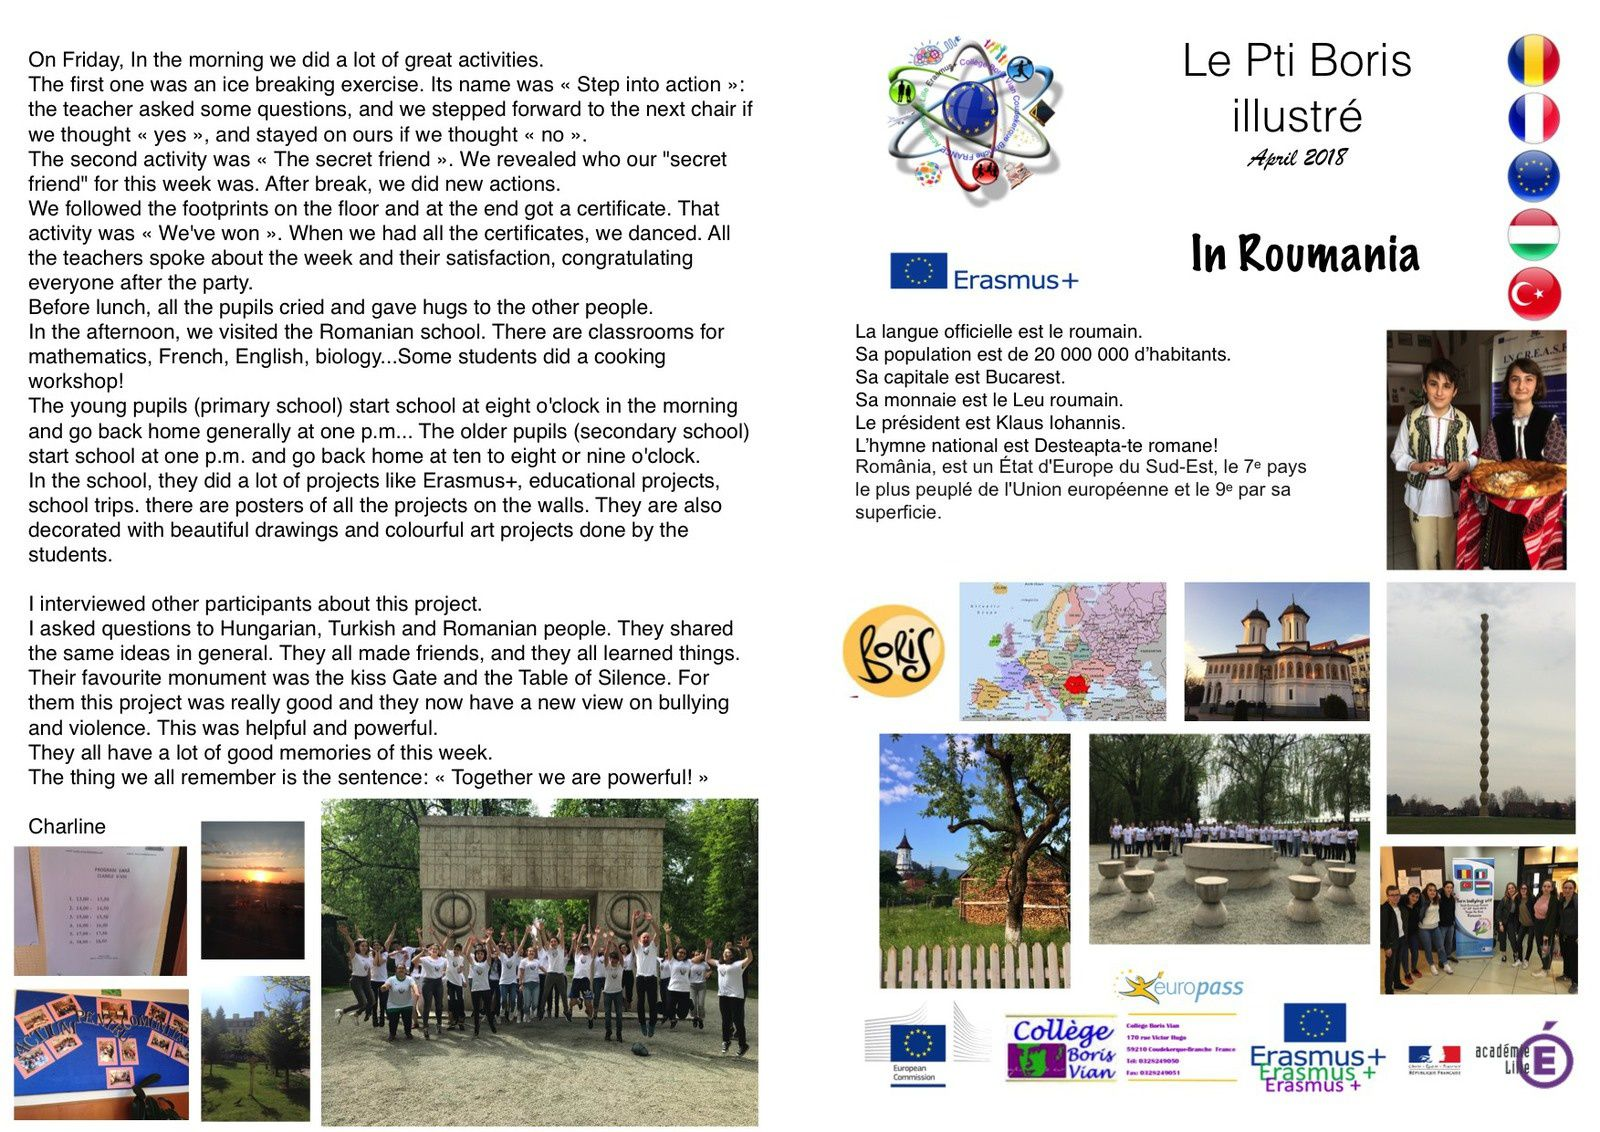 Let's remind our experience in Romania about bullying